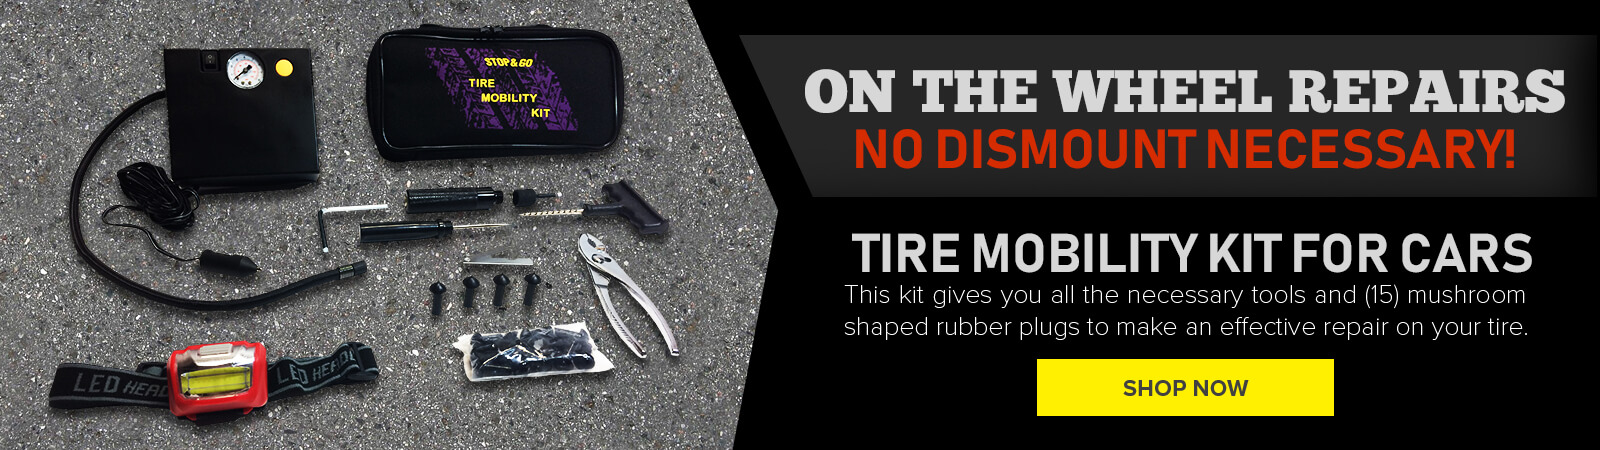 tire mobility kit - stop & go